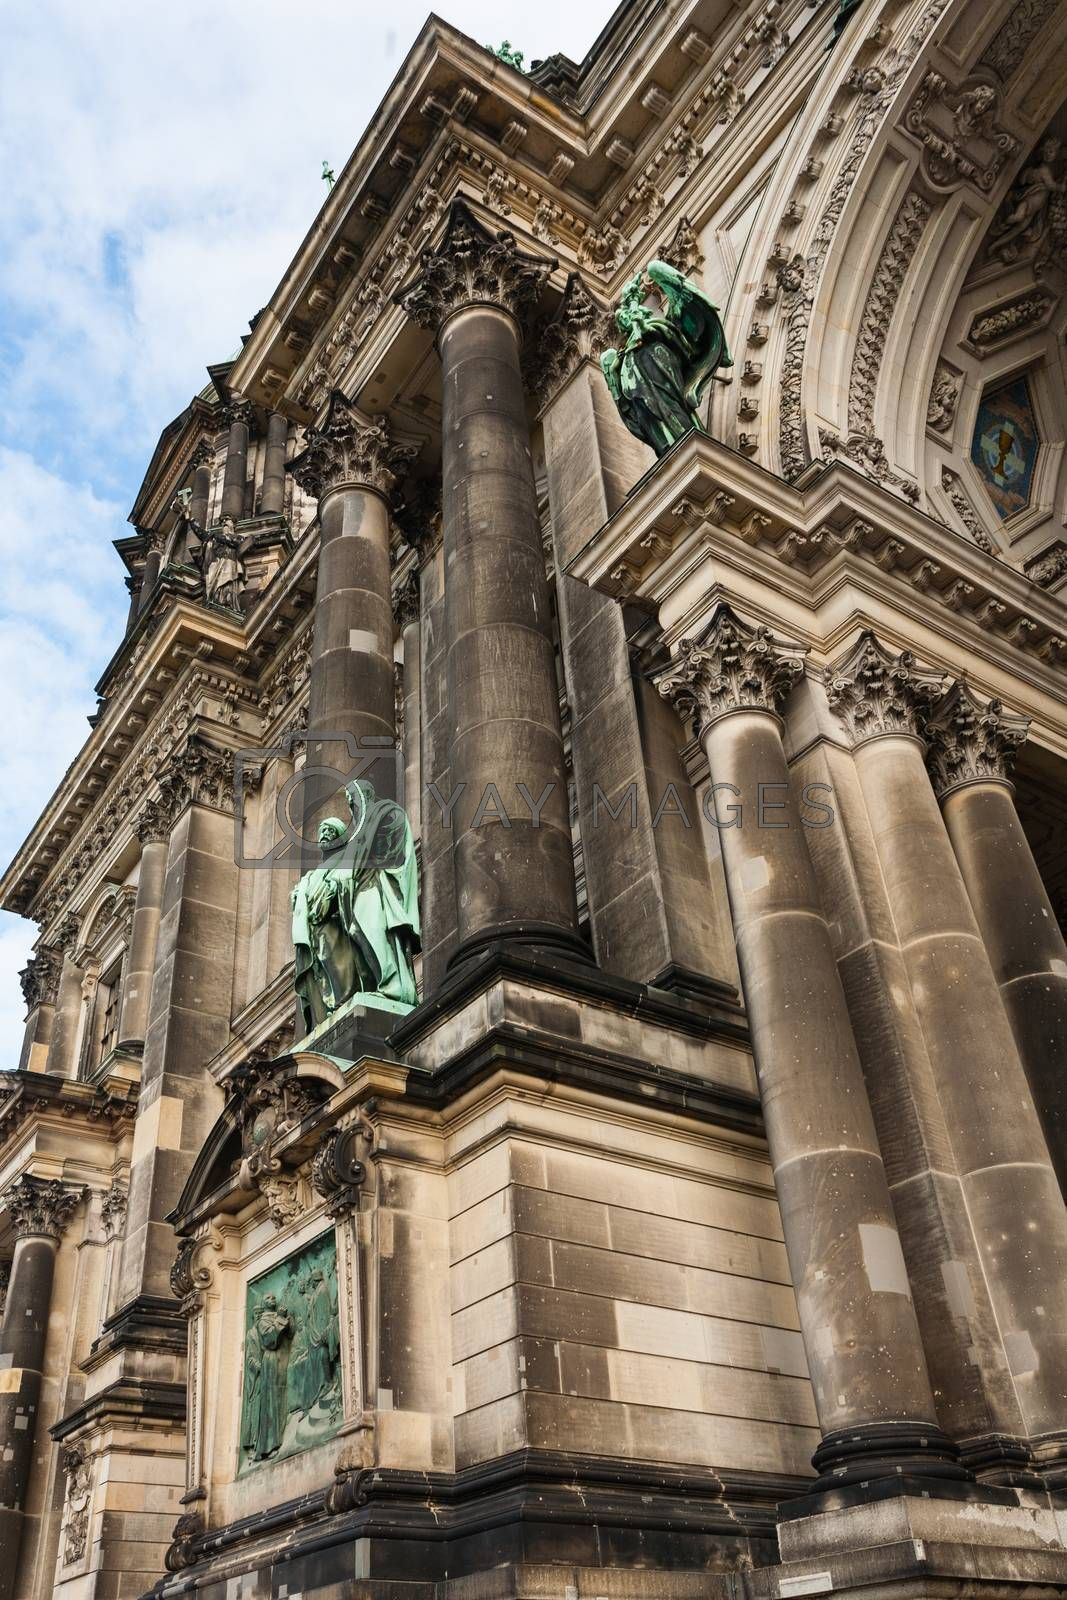 closeup view in the Evangelical cathedral also known as  Supreme Parish and Collegiate Church in Berlin ,Germany